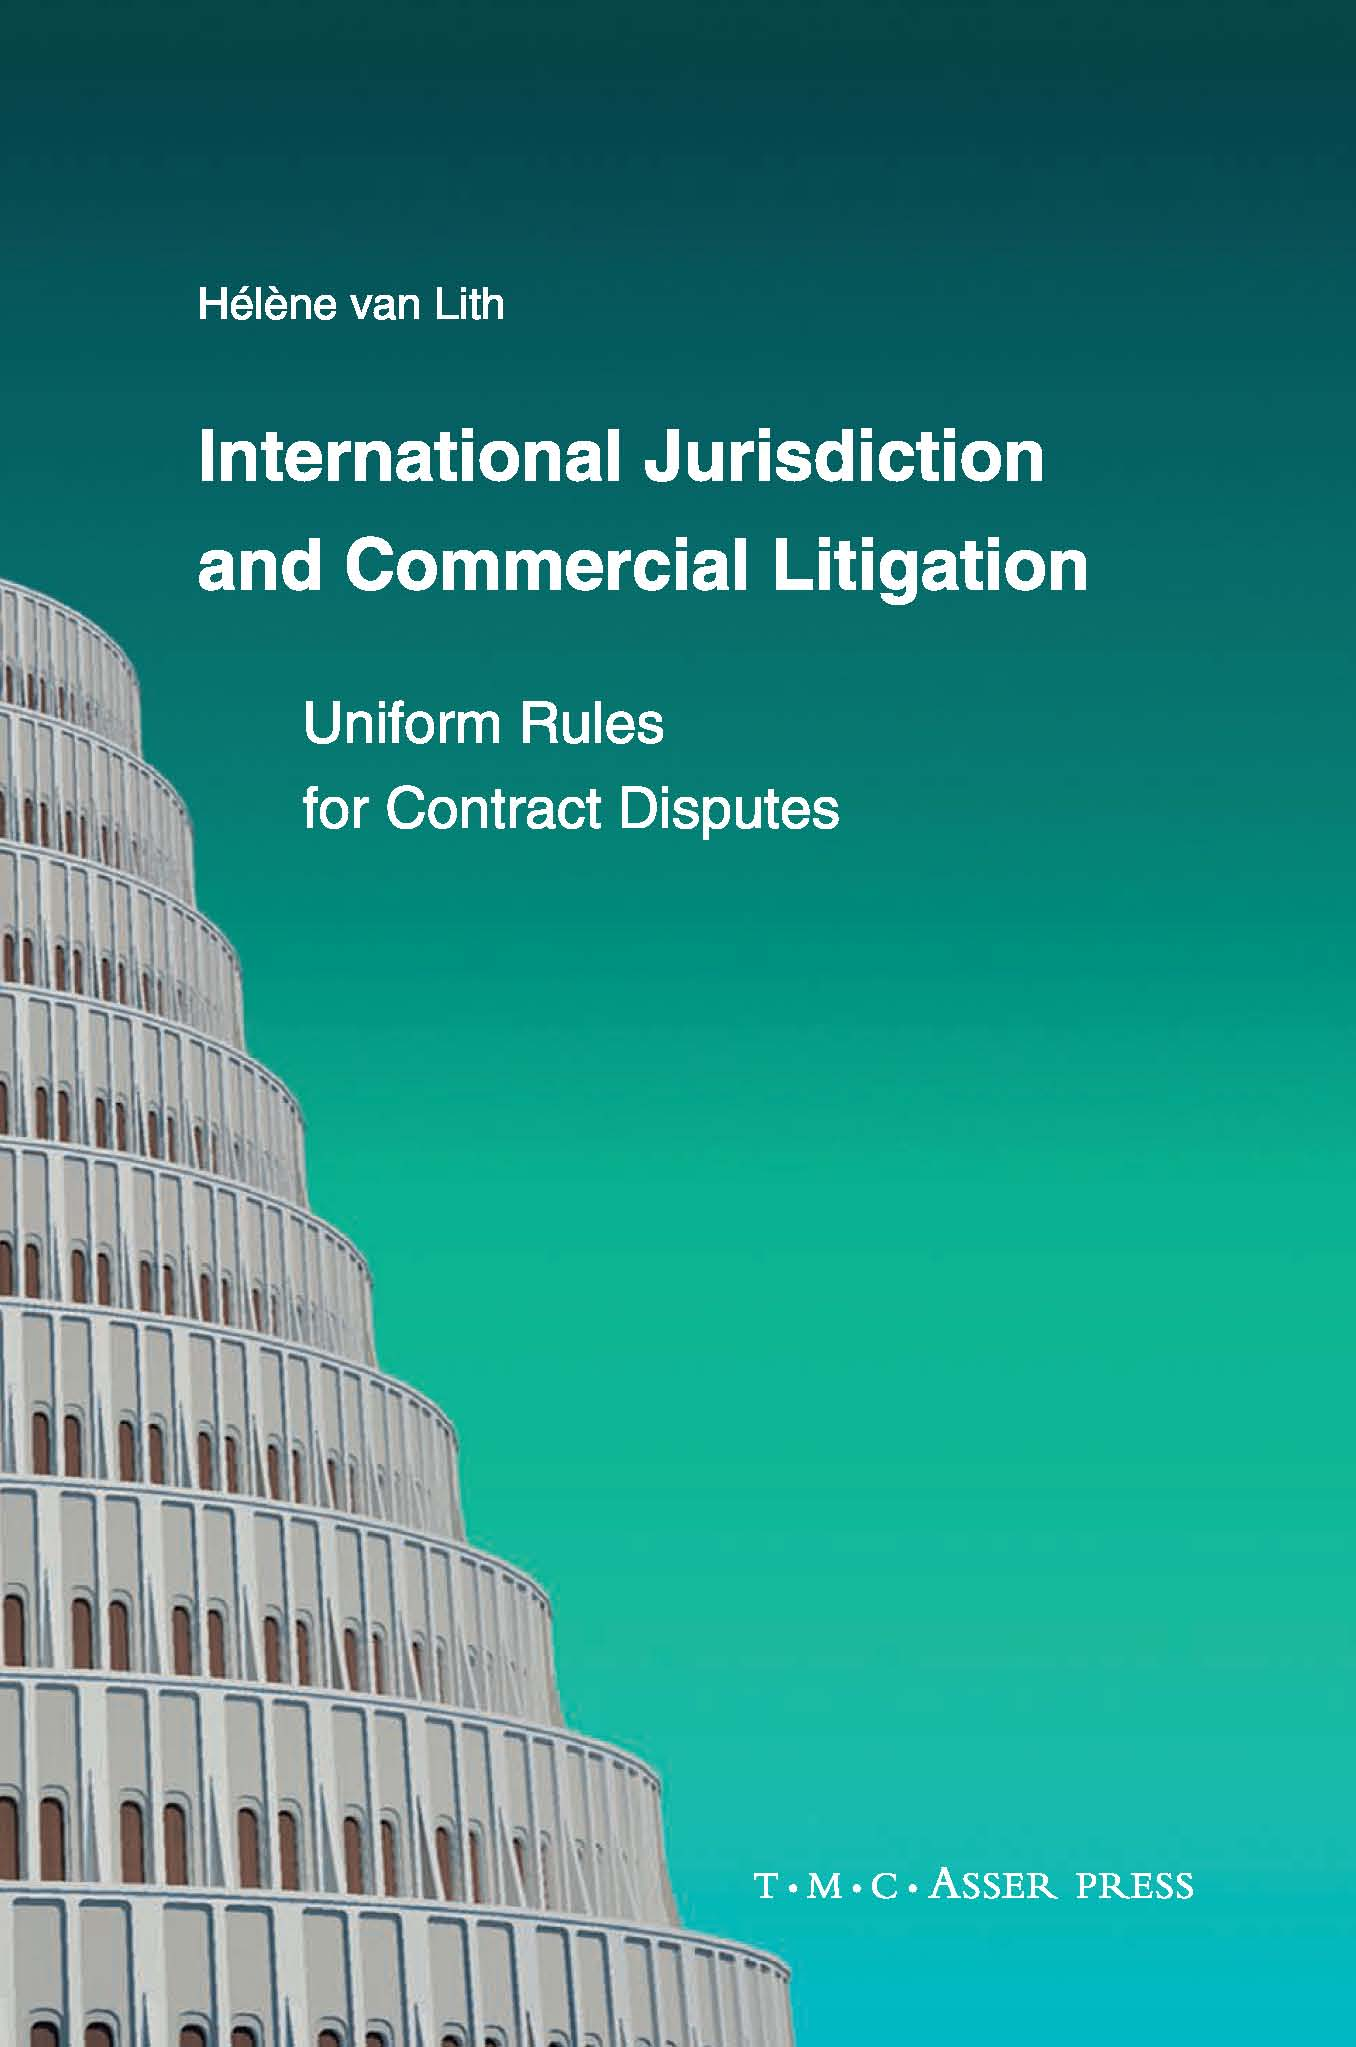 International Jurisdiction and Commercial Litigation - Uniform Rules for Contract Disputes